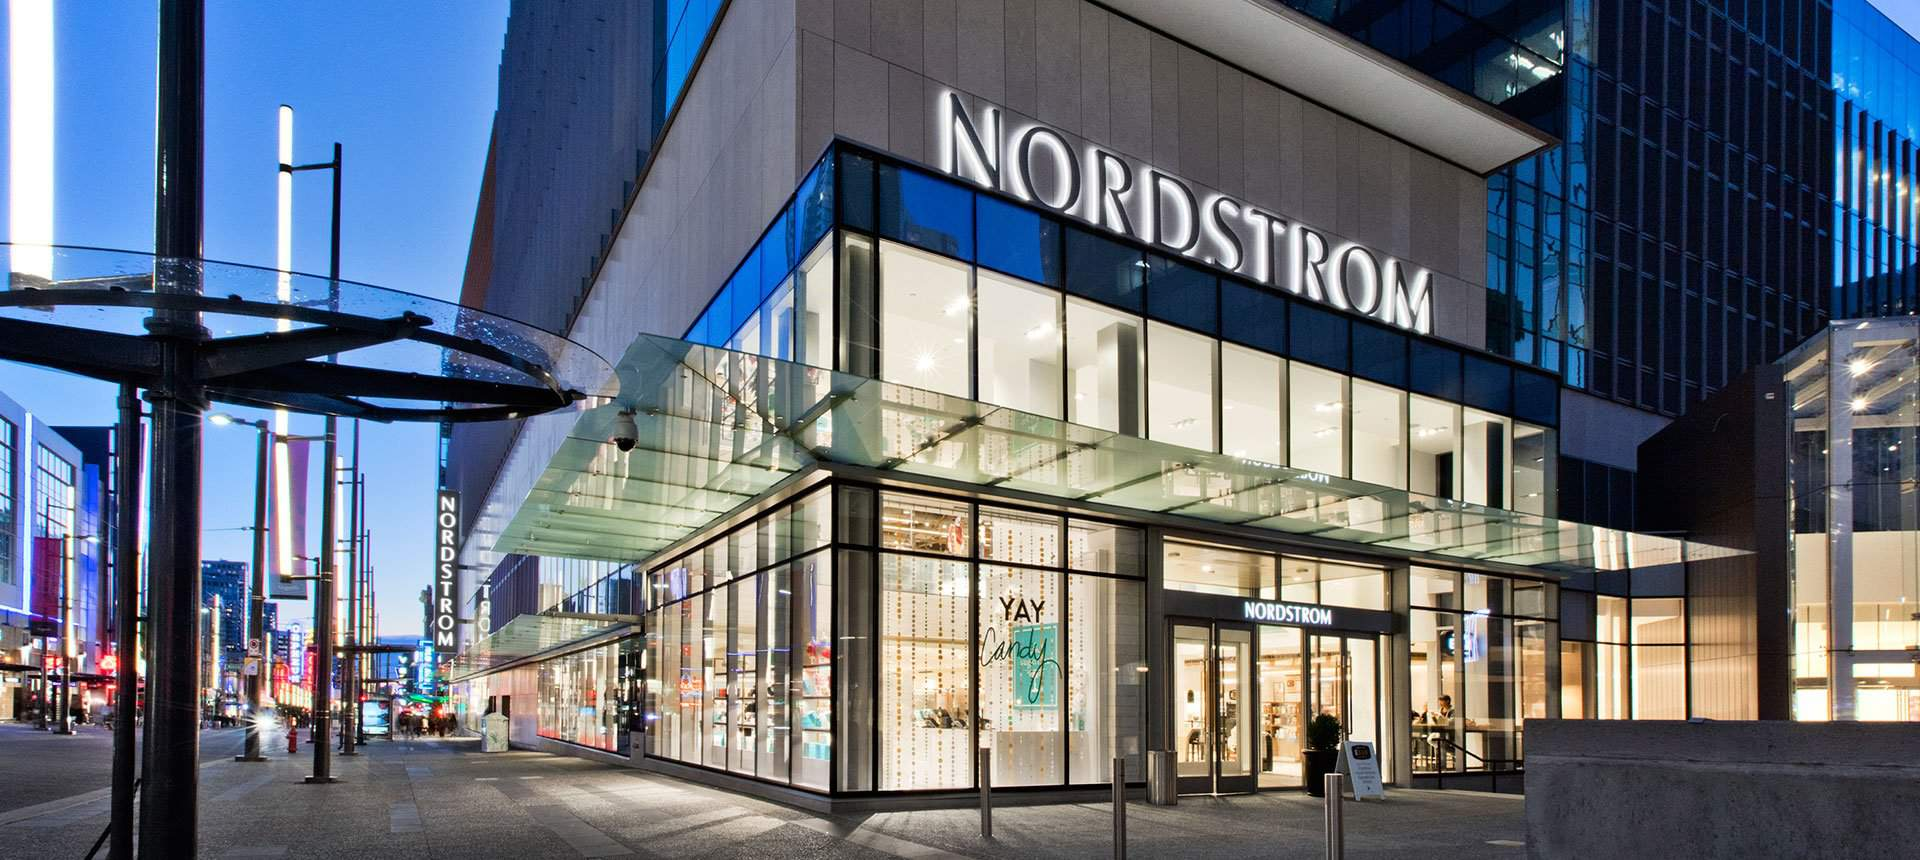 Nordstrom Is Extending Their Size Offerings In Store